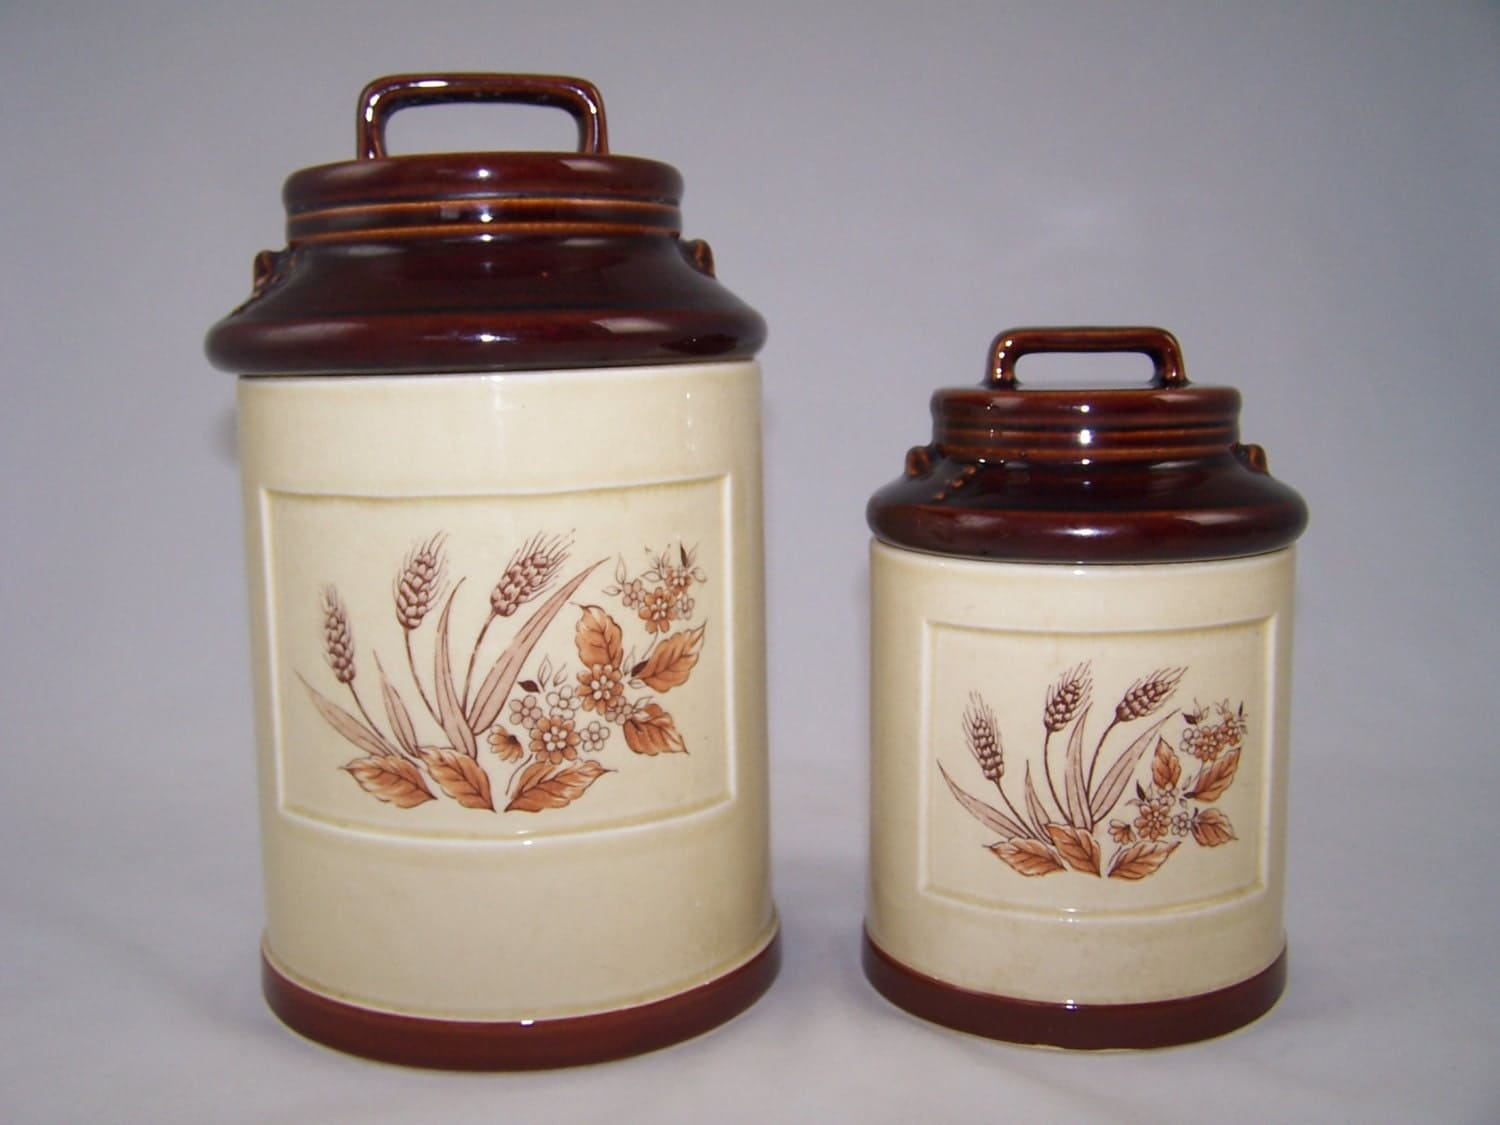 kitchen canister set vintage ceramic kitchen canister set 2 1960 s handled